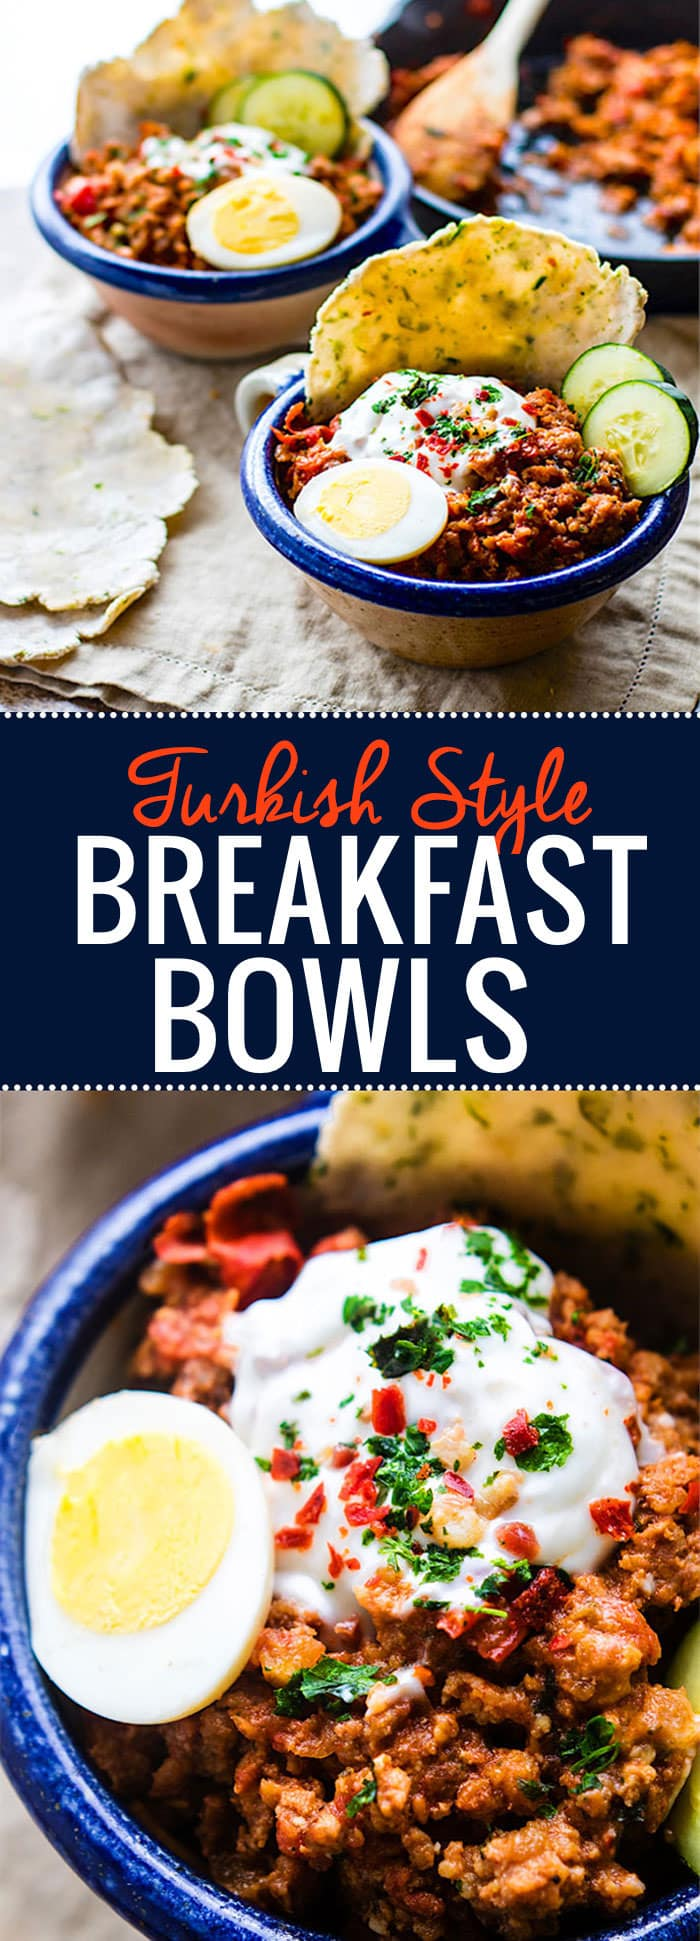 Grain Free Turkish Style Savory Breakfast Bowls. One pan is all you need to make these healthy savory breakfast bowls. Packed with all spicy breakfast sausage, herbs, spices, egg, and a tangy yogurt topping! Great for breakfast, brunch, or dinner. Perfect with paleo flatbread or crusty gluten free toast. @cottercrunch